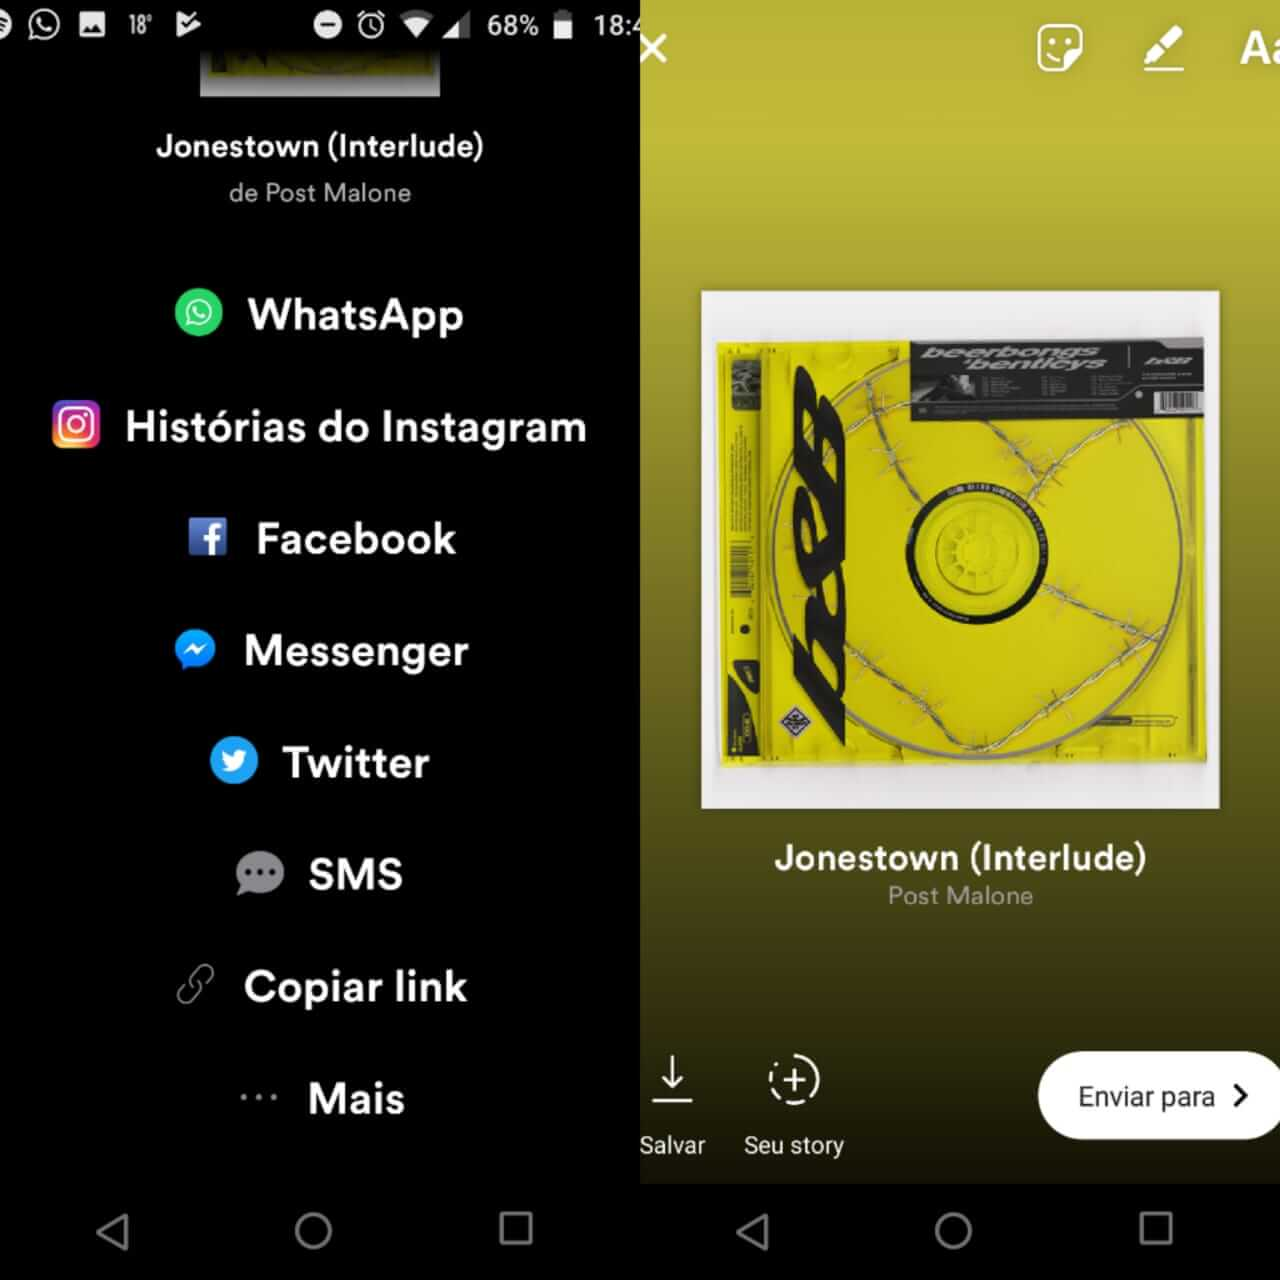 WhatsApp Image 2018 05 21 at 19.01.12 1 - Como compartilhar músicas do Spotify no Instagram